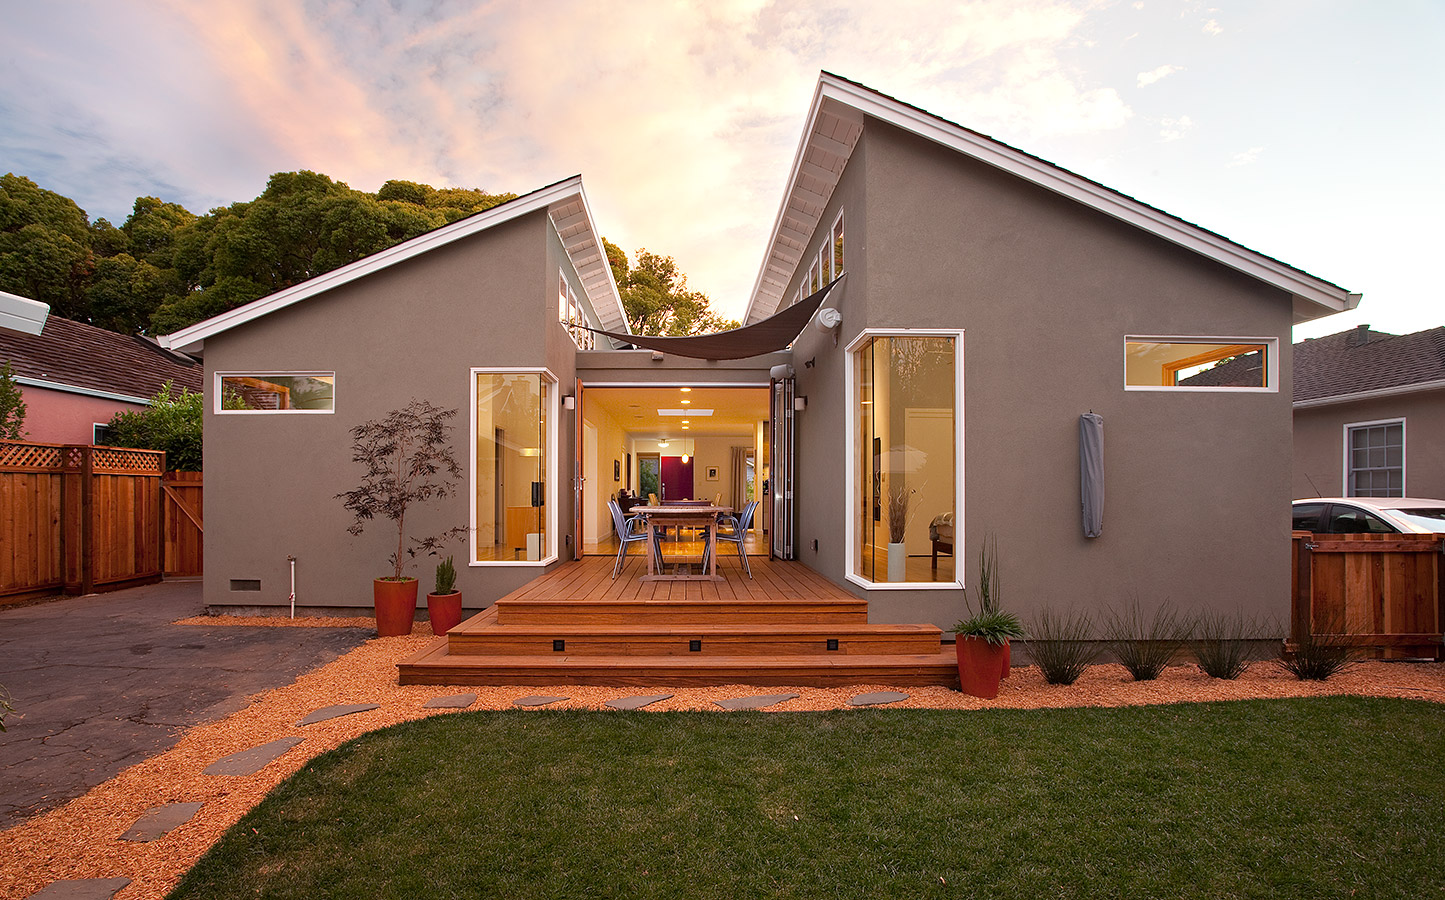 Modern Ranch House | Klopf Architecture